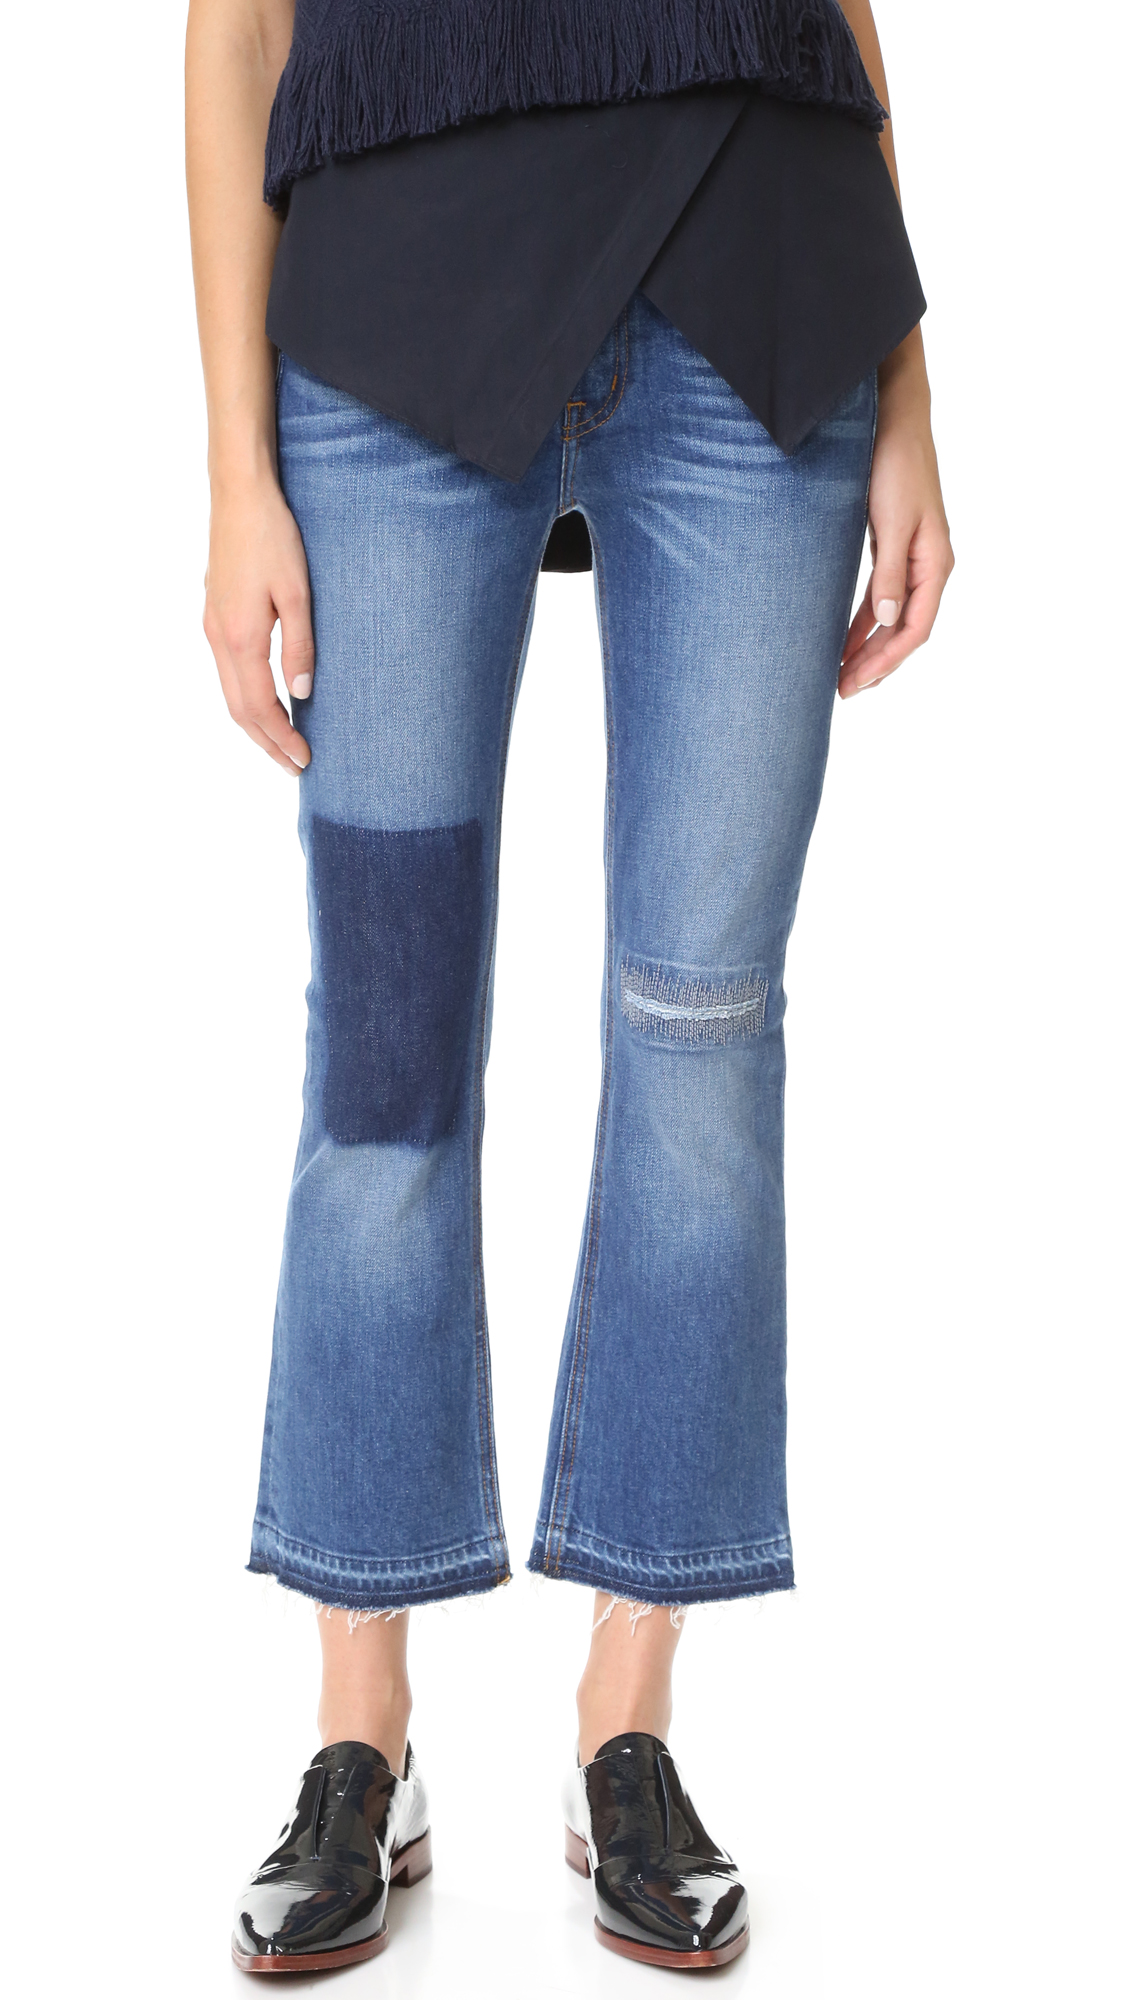 Derek Lam 10 Crosby Gia Mid Rise Cropped Flare Jeans - Medium Wash at Shopbop